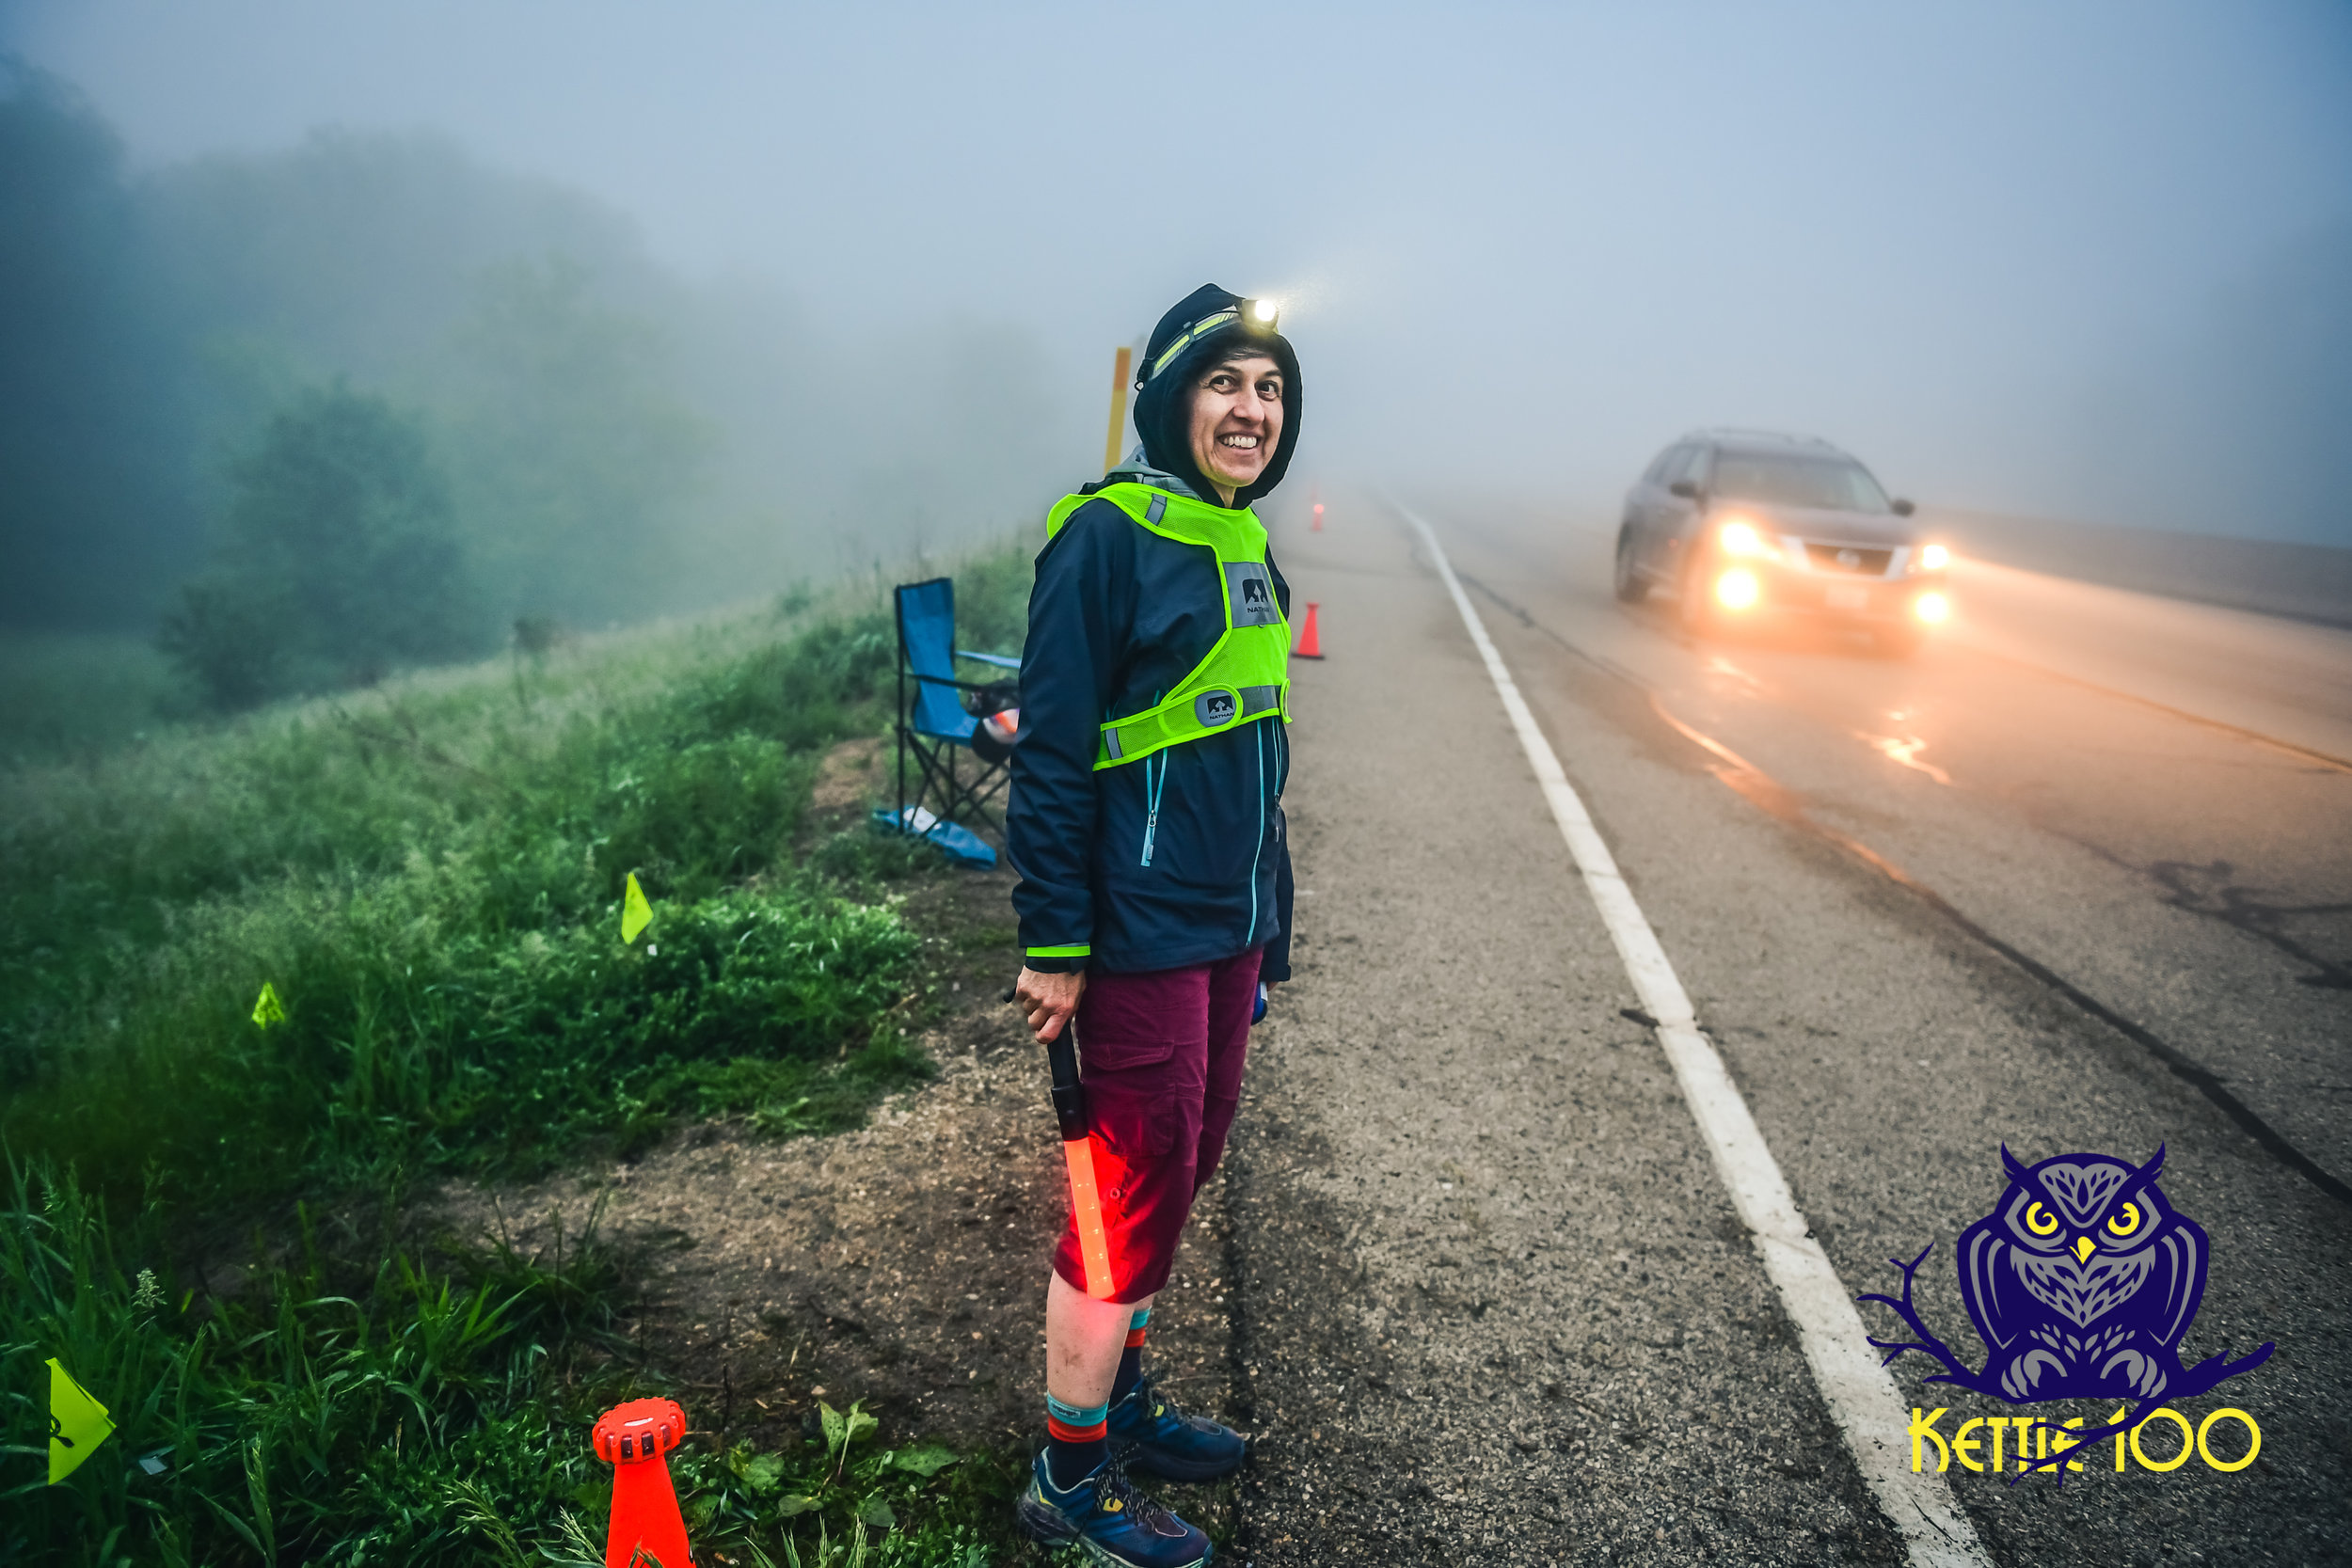 Becky Leahy helping runners cross Hwy 12 safely